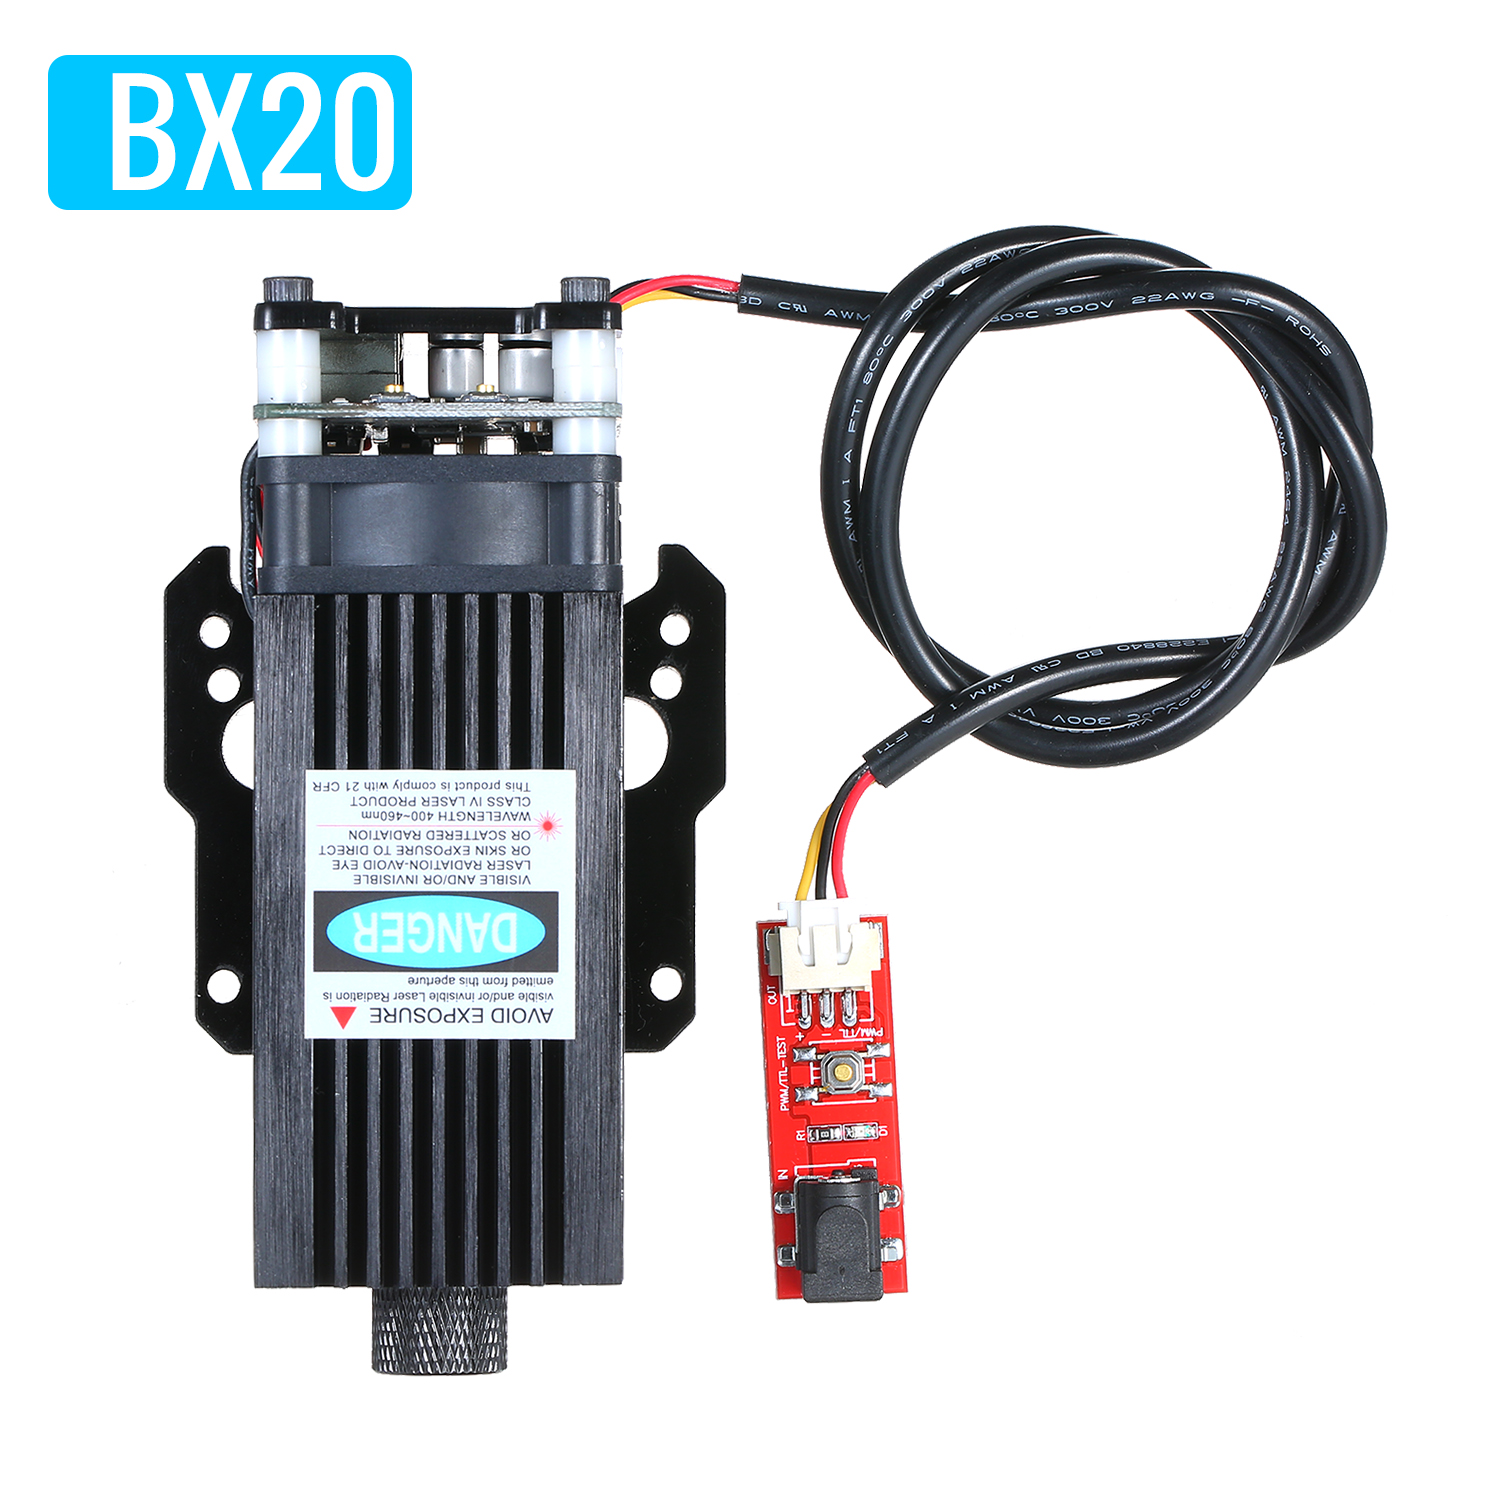 Portable 20W Laser Head Laser Module Woodworking Machinery Parts DIY Tools For VG-L7 Laser Engraving Machine